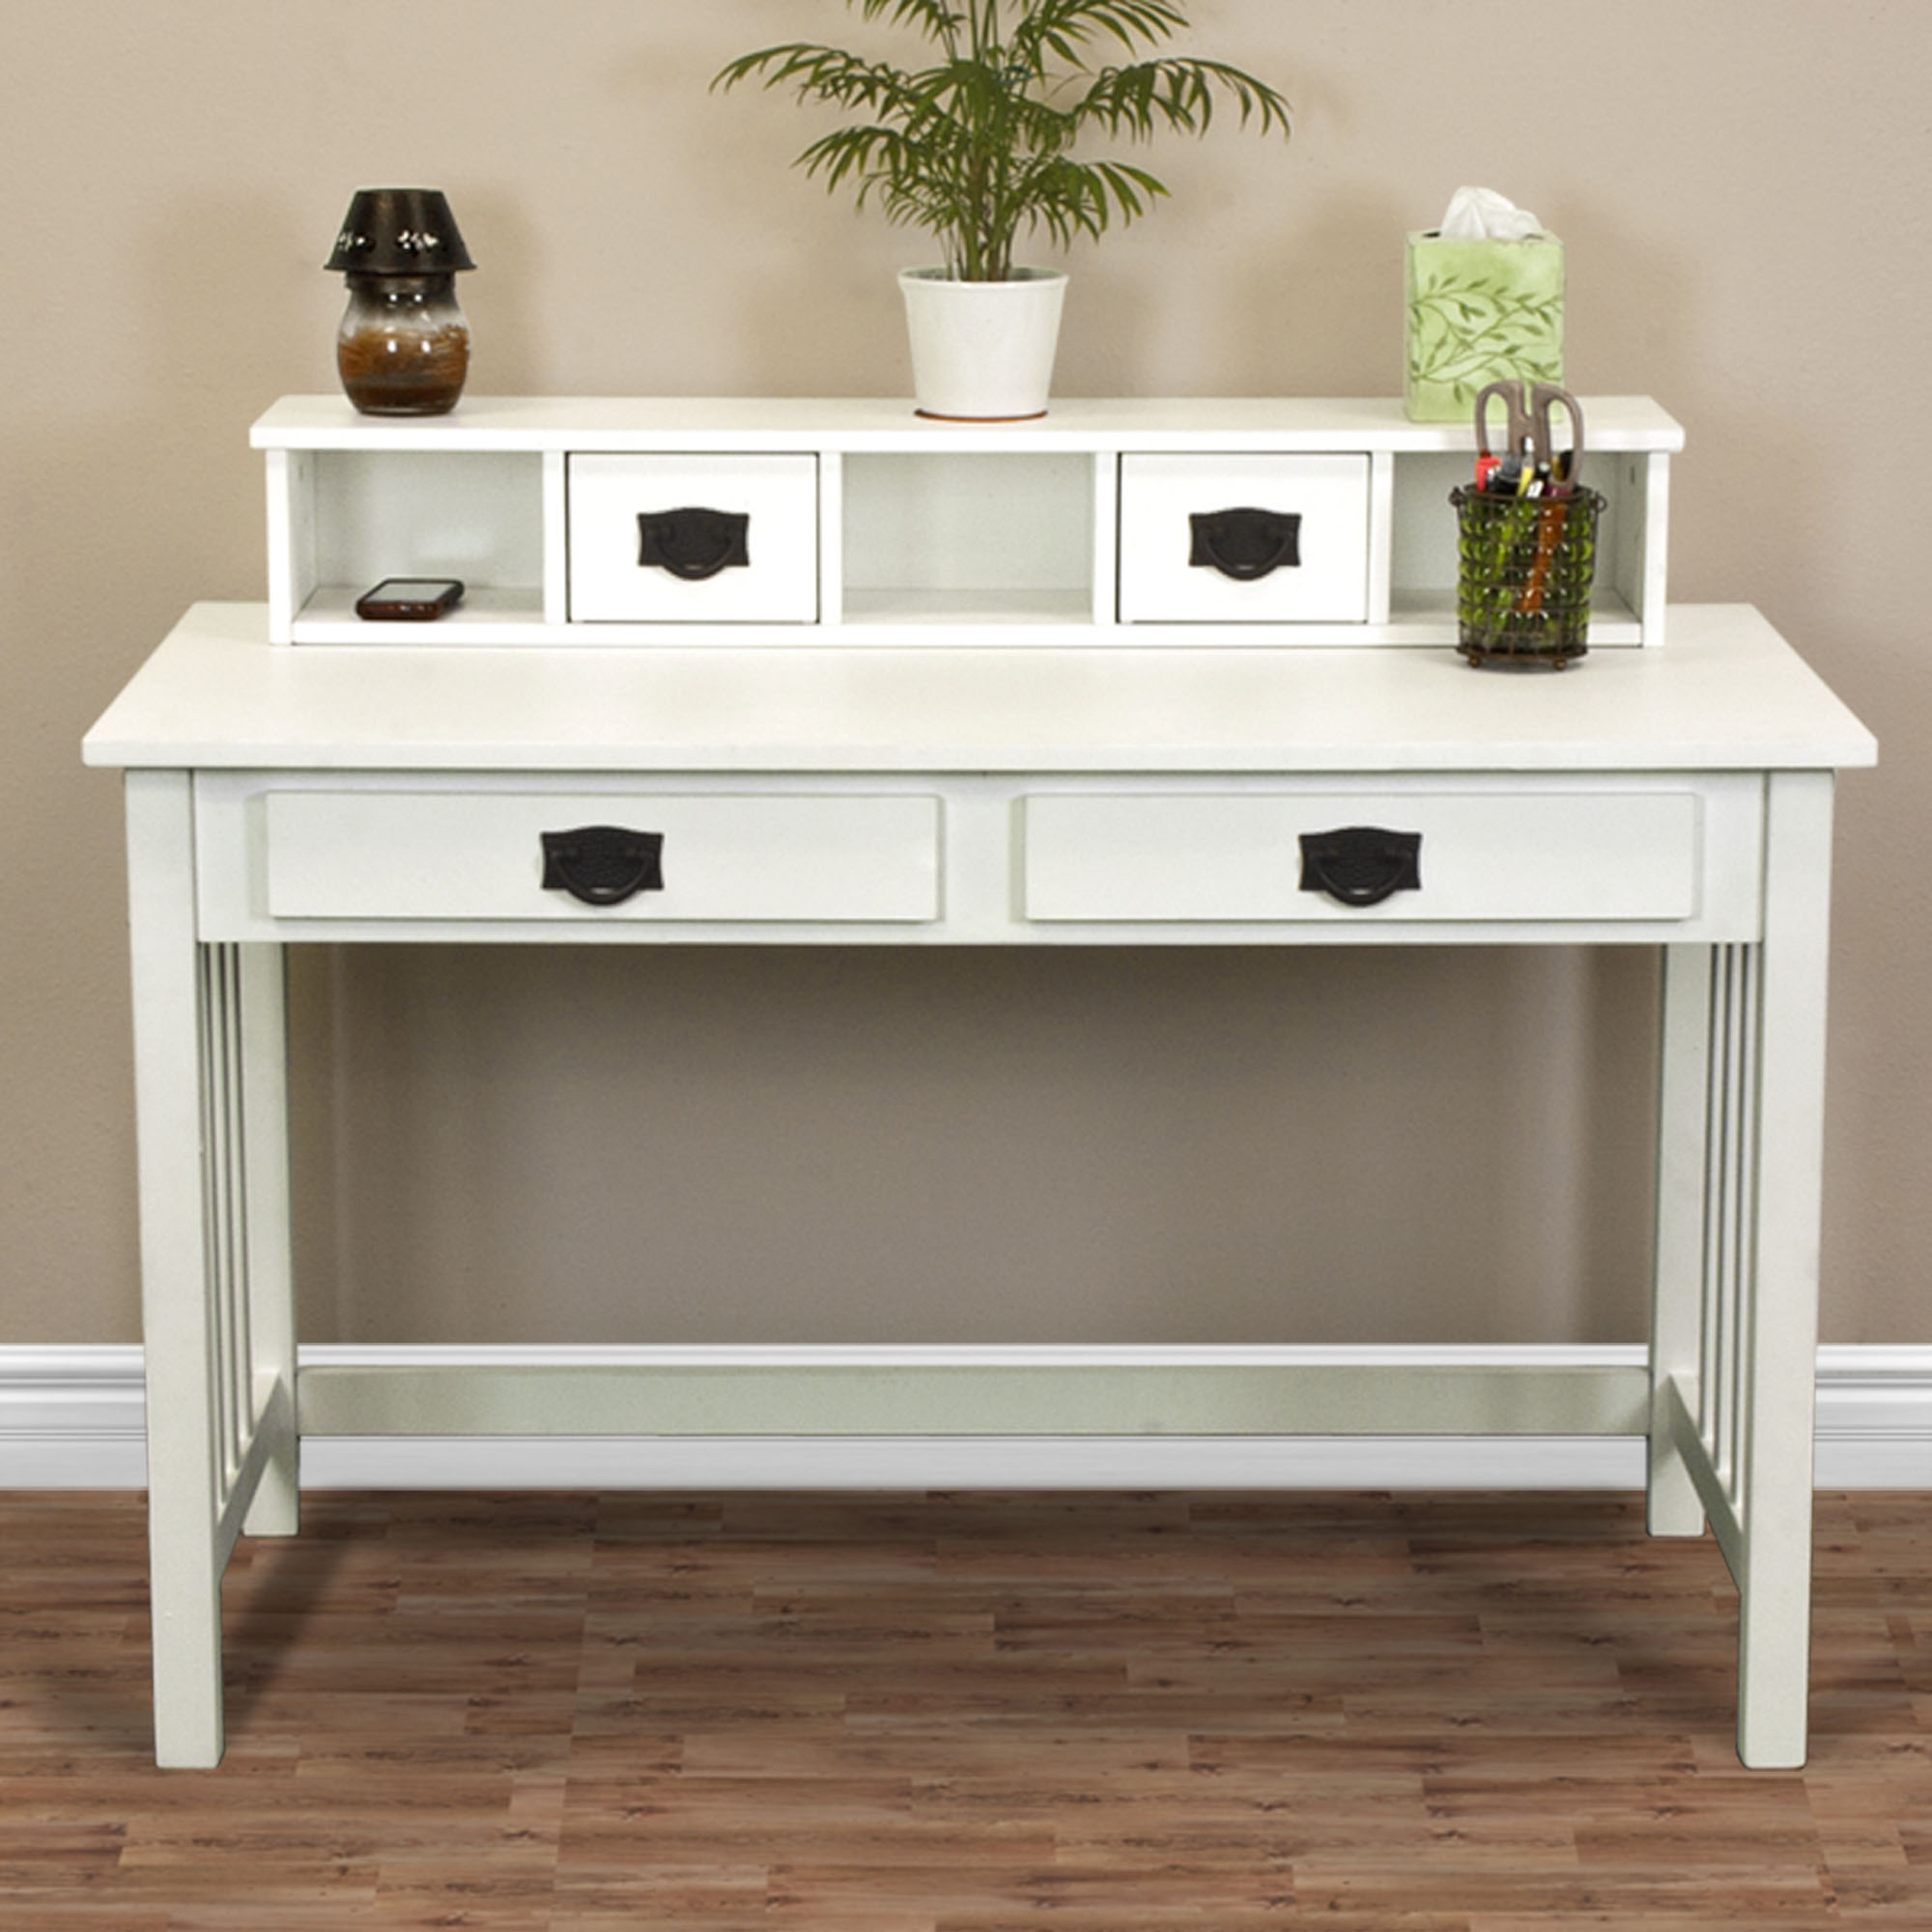 Best Choice Products Writing Desk Mission Home Office Computer Desk Wood Construction New - White